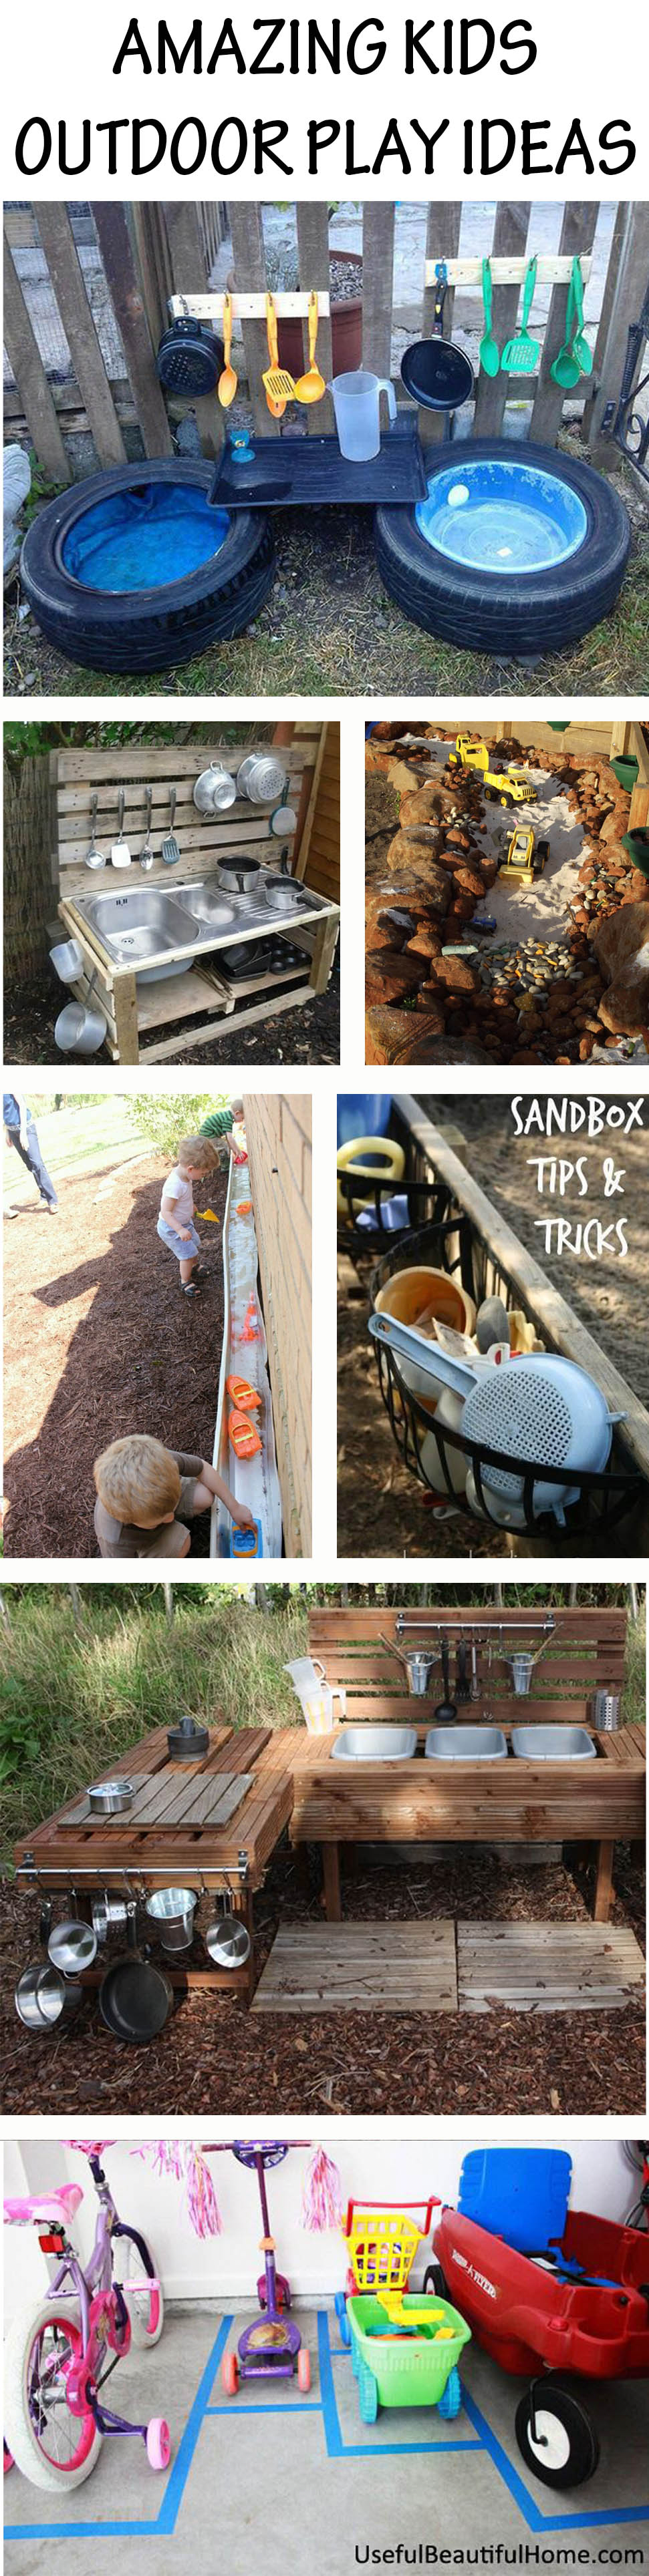 Diy Couchtisch Ikea Kids Outdoor Play Ideas - The Keeper Of The Cheerios